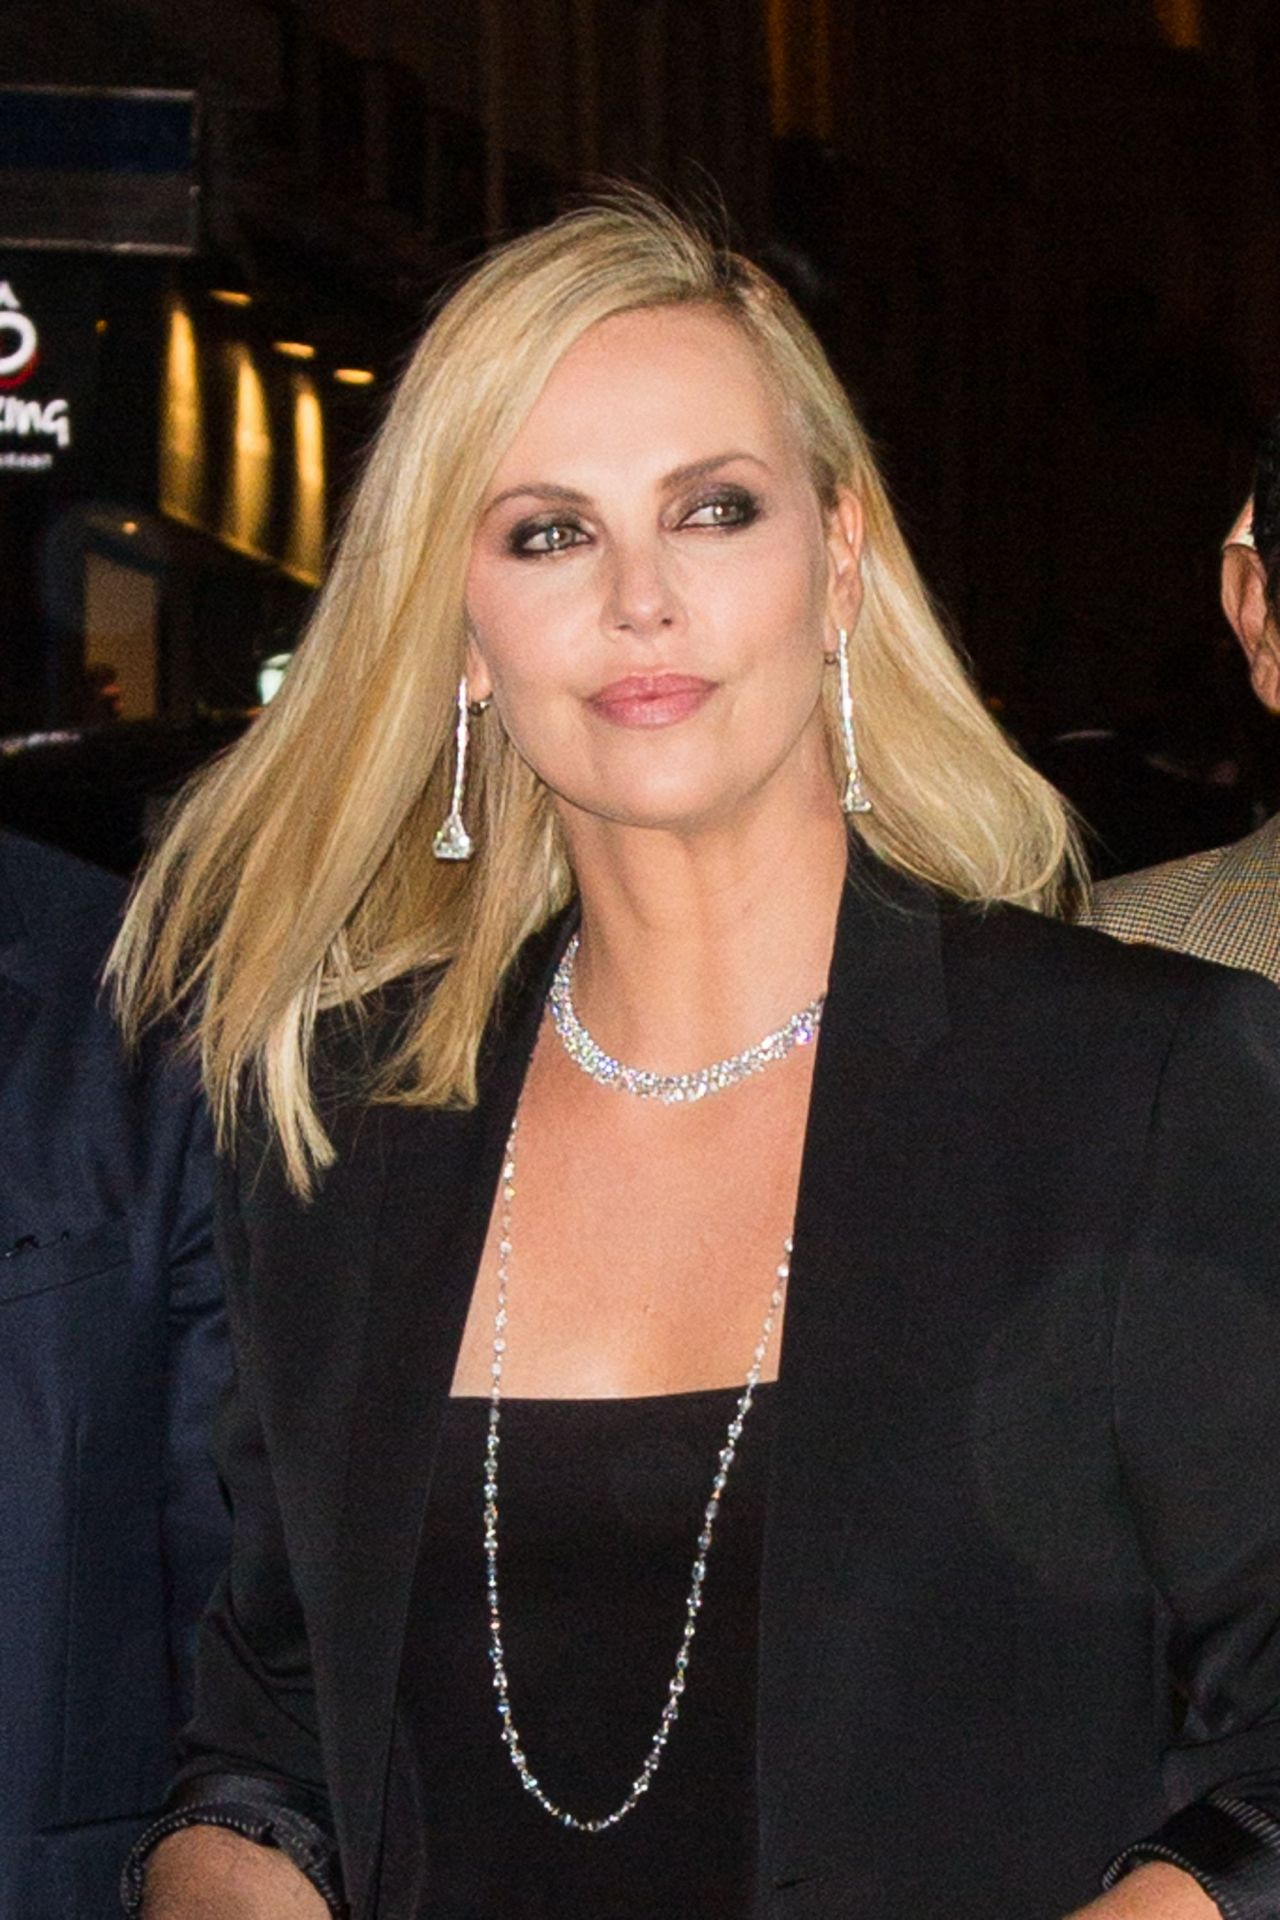 """Charlize Theron Arrive to the Premiere of """"The Fate of the Furious"""" in Paris 4/5/2017"""